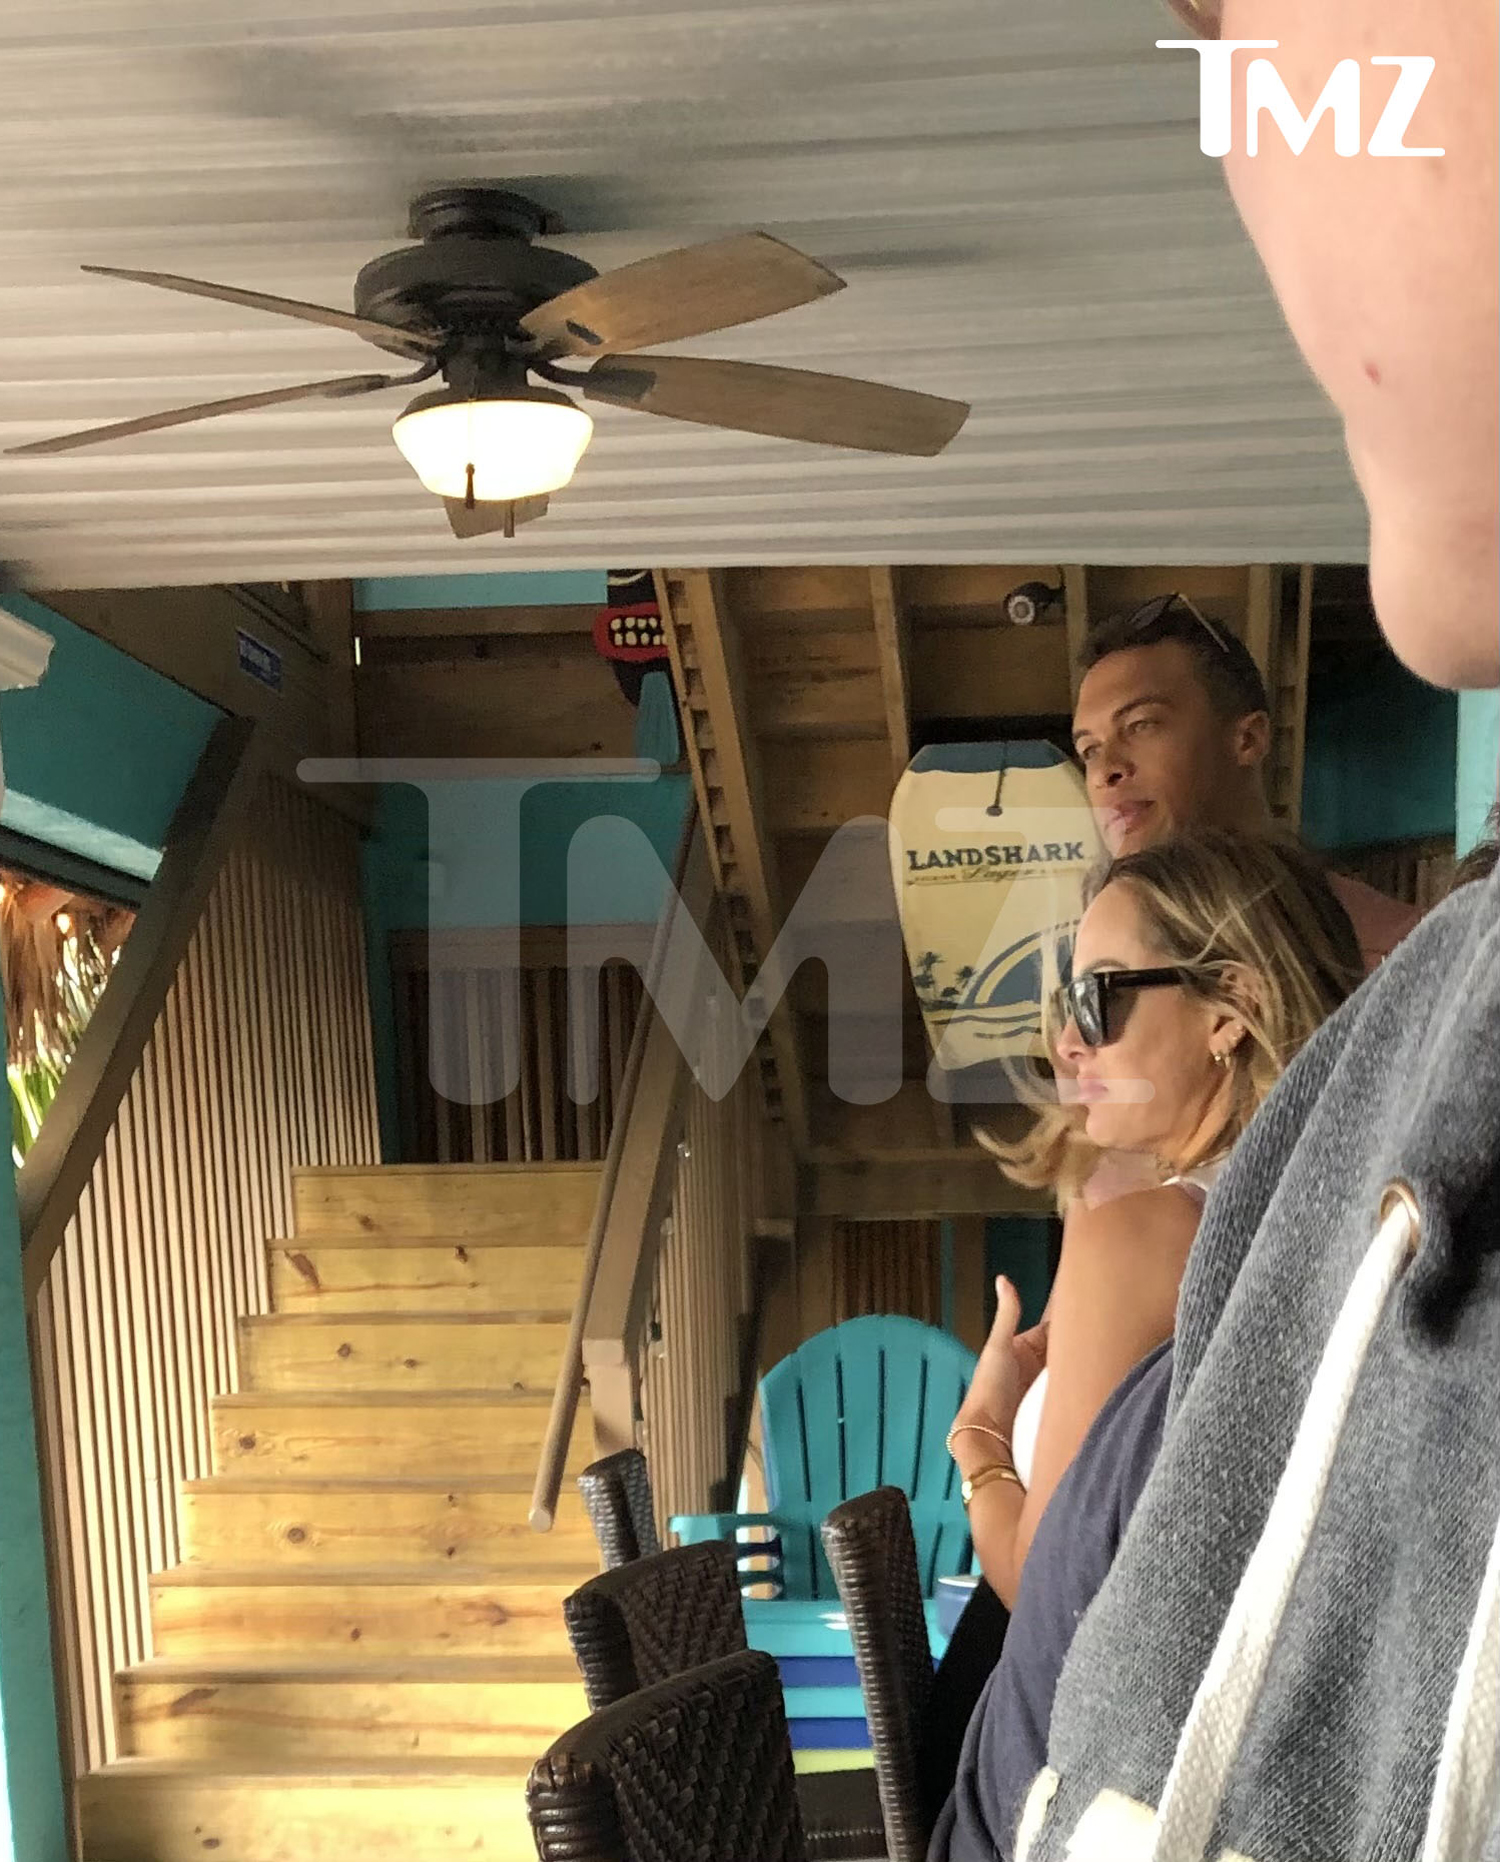 Clare Crawley and Dale Moss are hanging out again after their break-up ... hitting a bar in Florida less than a month after going their separate ways.